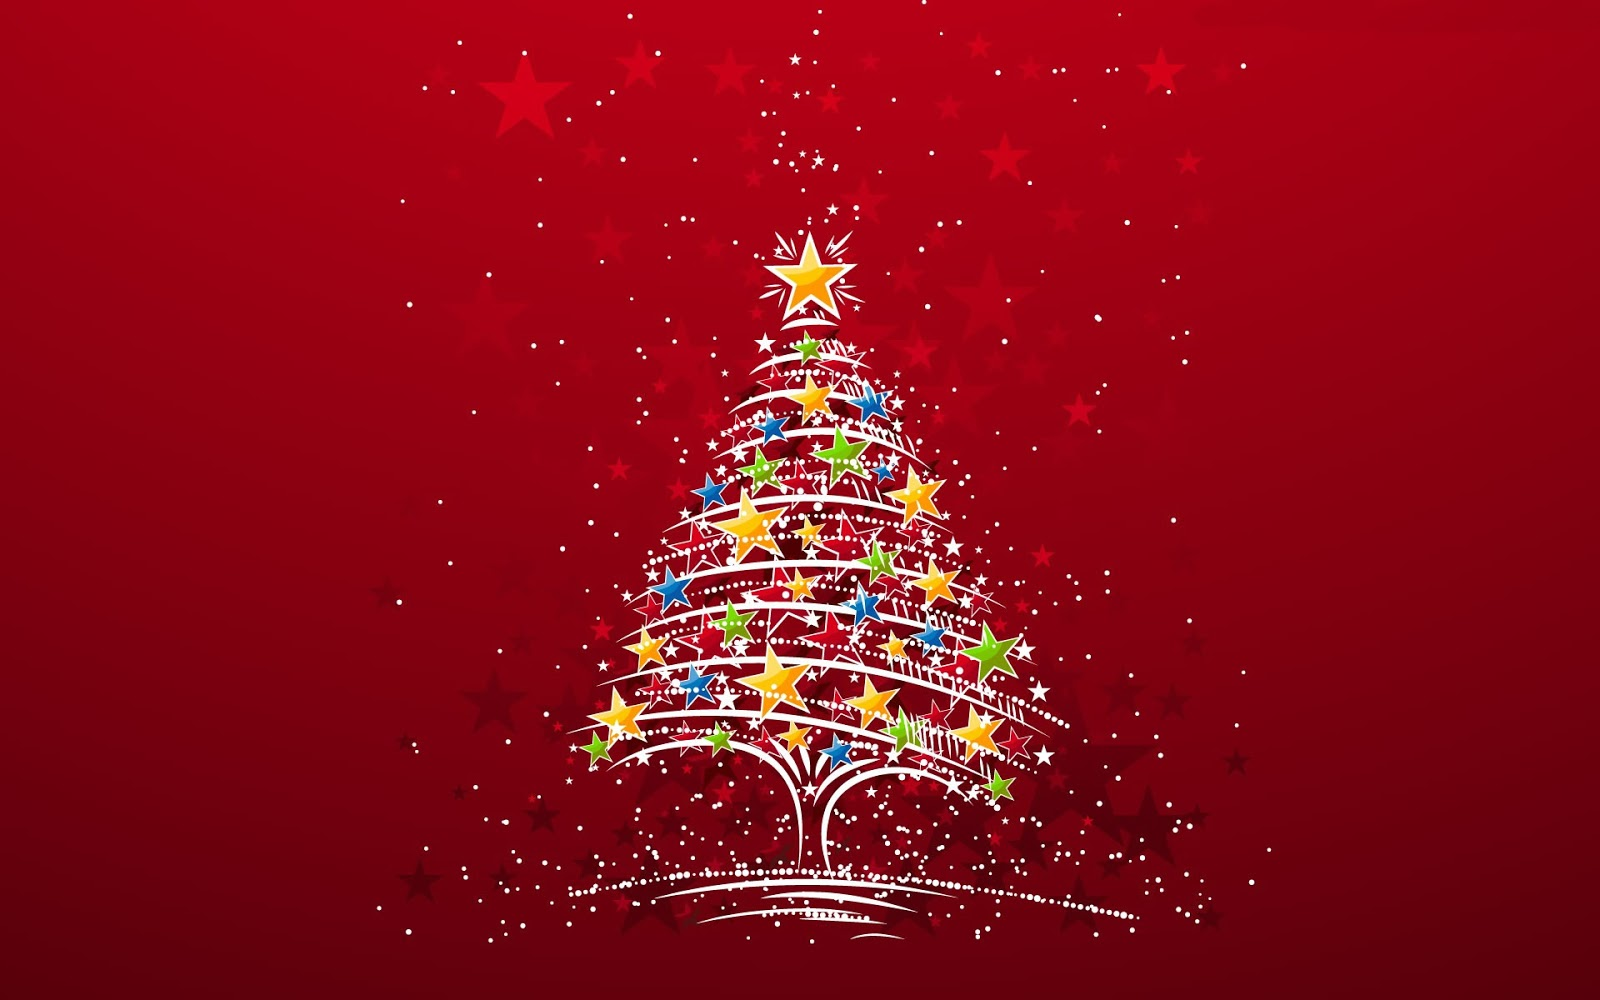 40 High Quality Christmas Wallpapers and E-cards | Spicytec